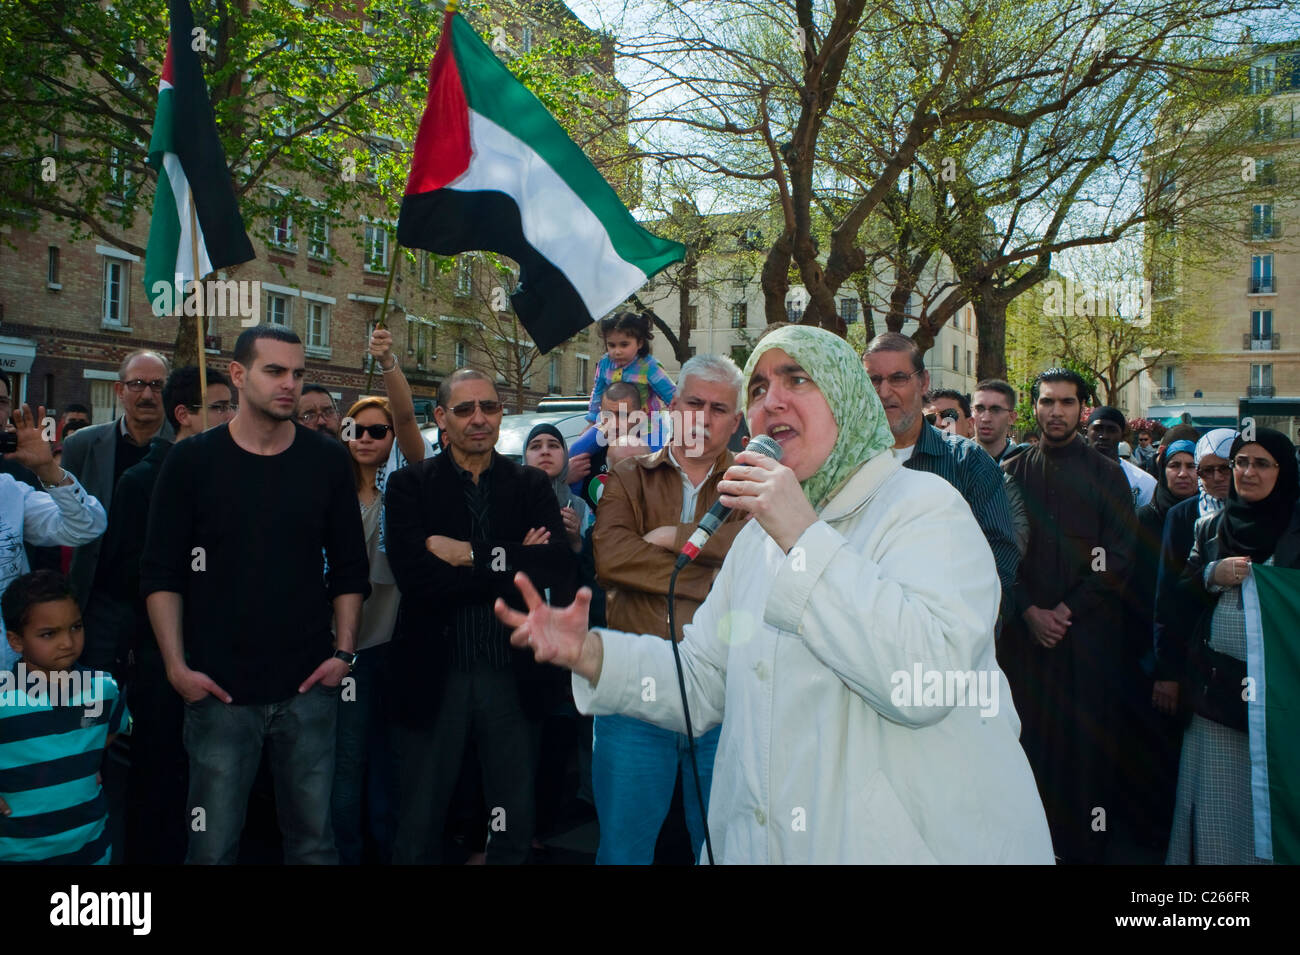 Paris, France, Muslim Veiled Woman with Hijab, headscarf,  Demonstrating Against Islamophobia, Speaking to Crowd - Stock Image